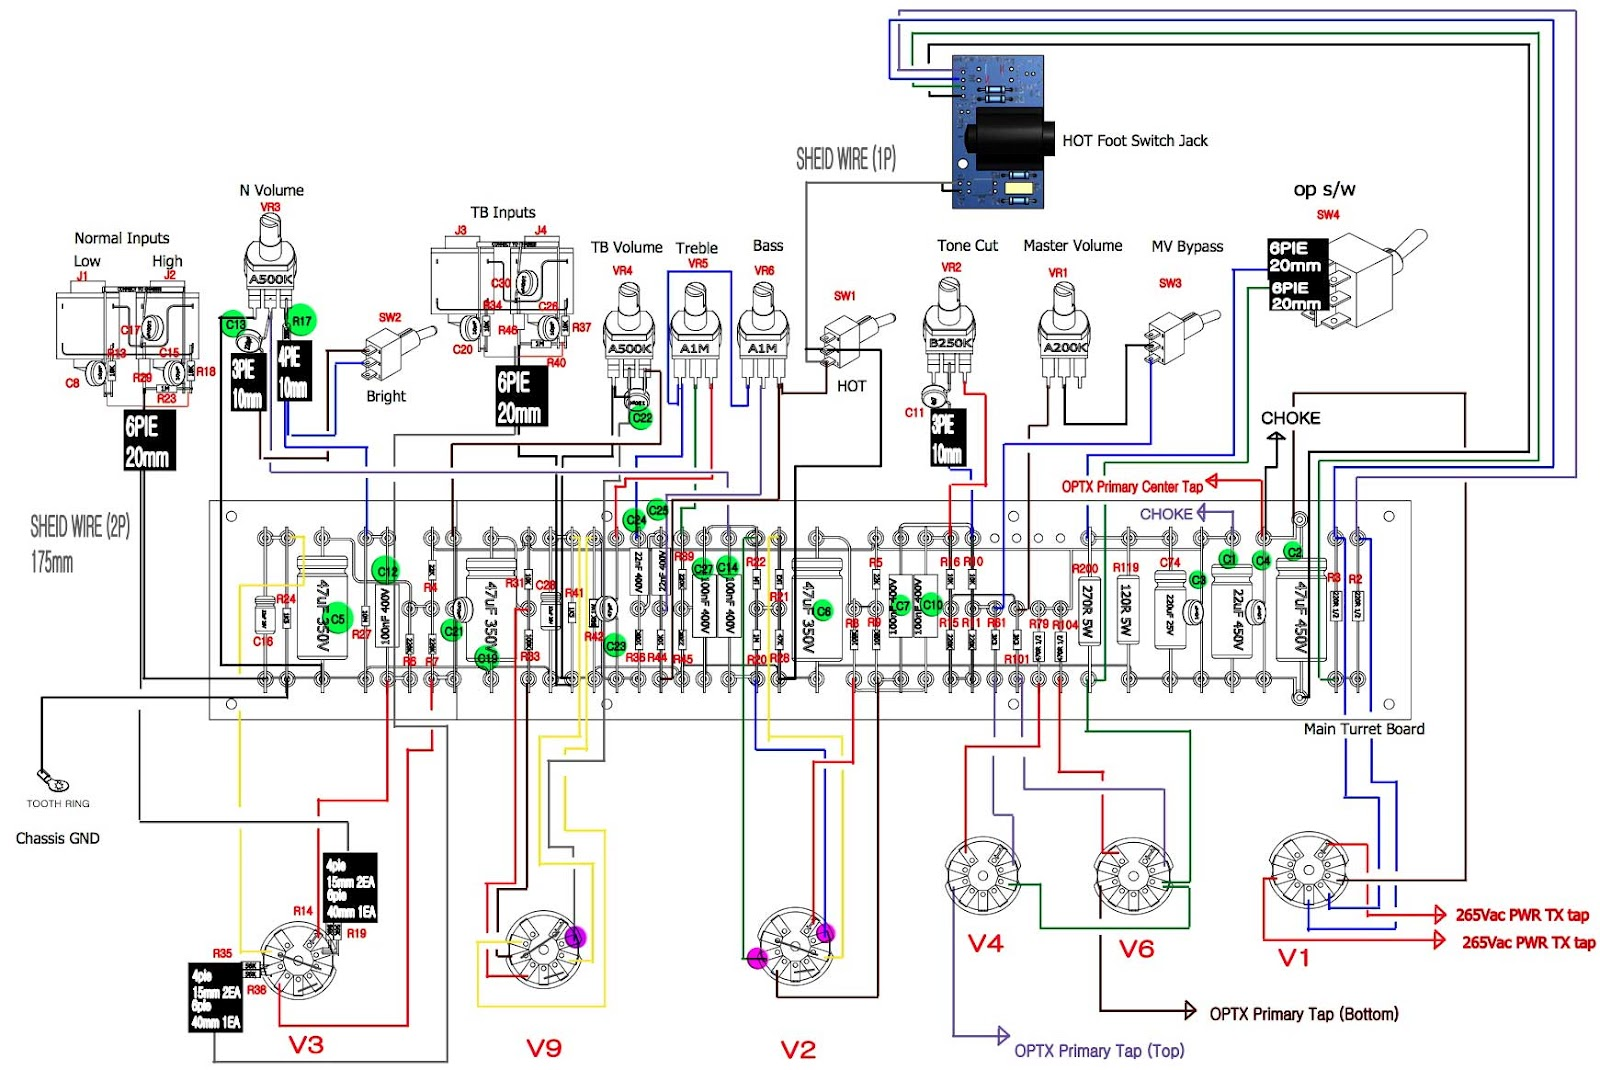 vox wiring diagram vox ac15hw1x schematic and/or service manual keh 2600 speaker wiring diagram #13